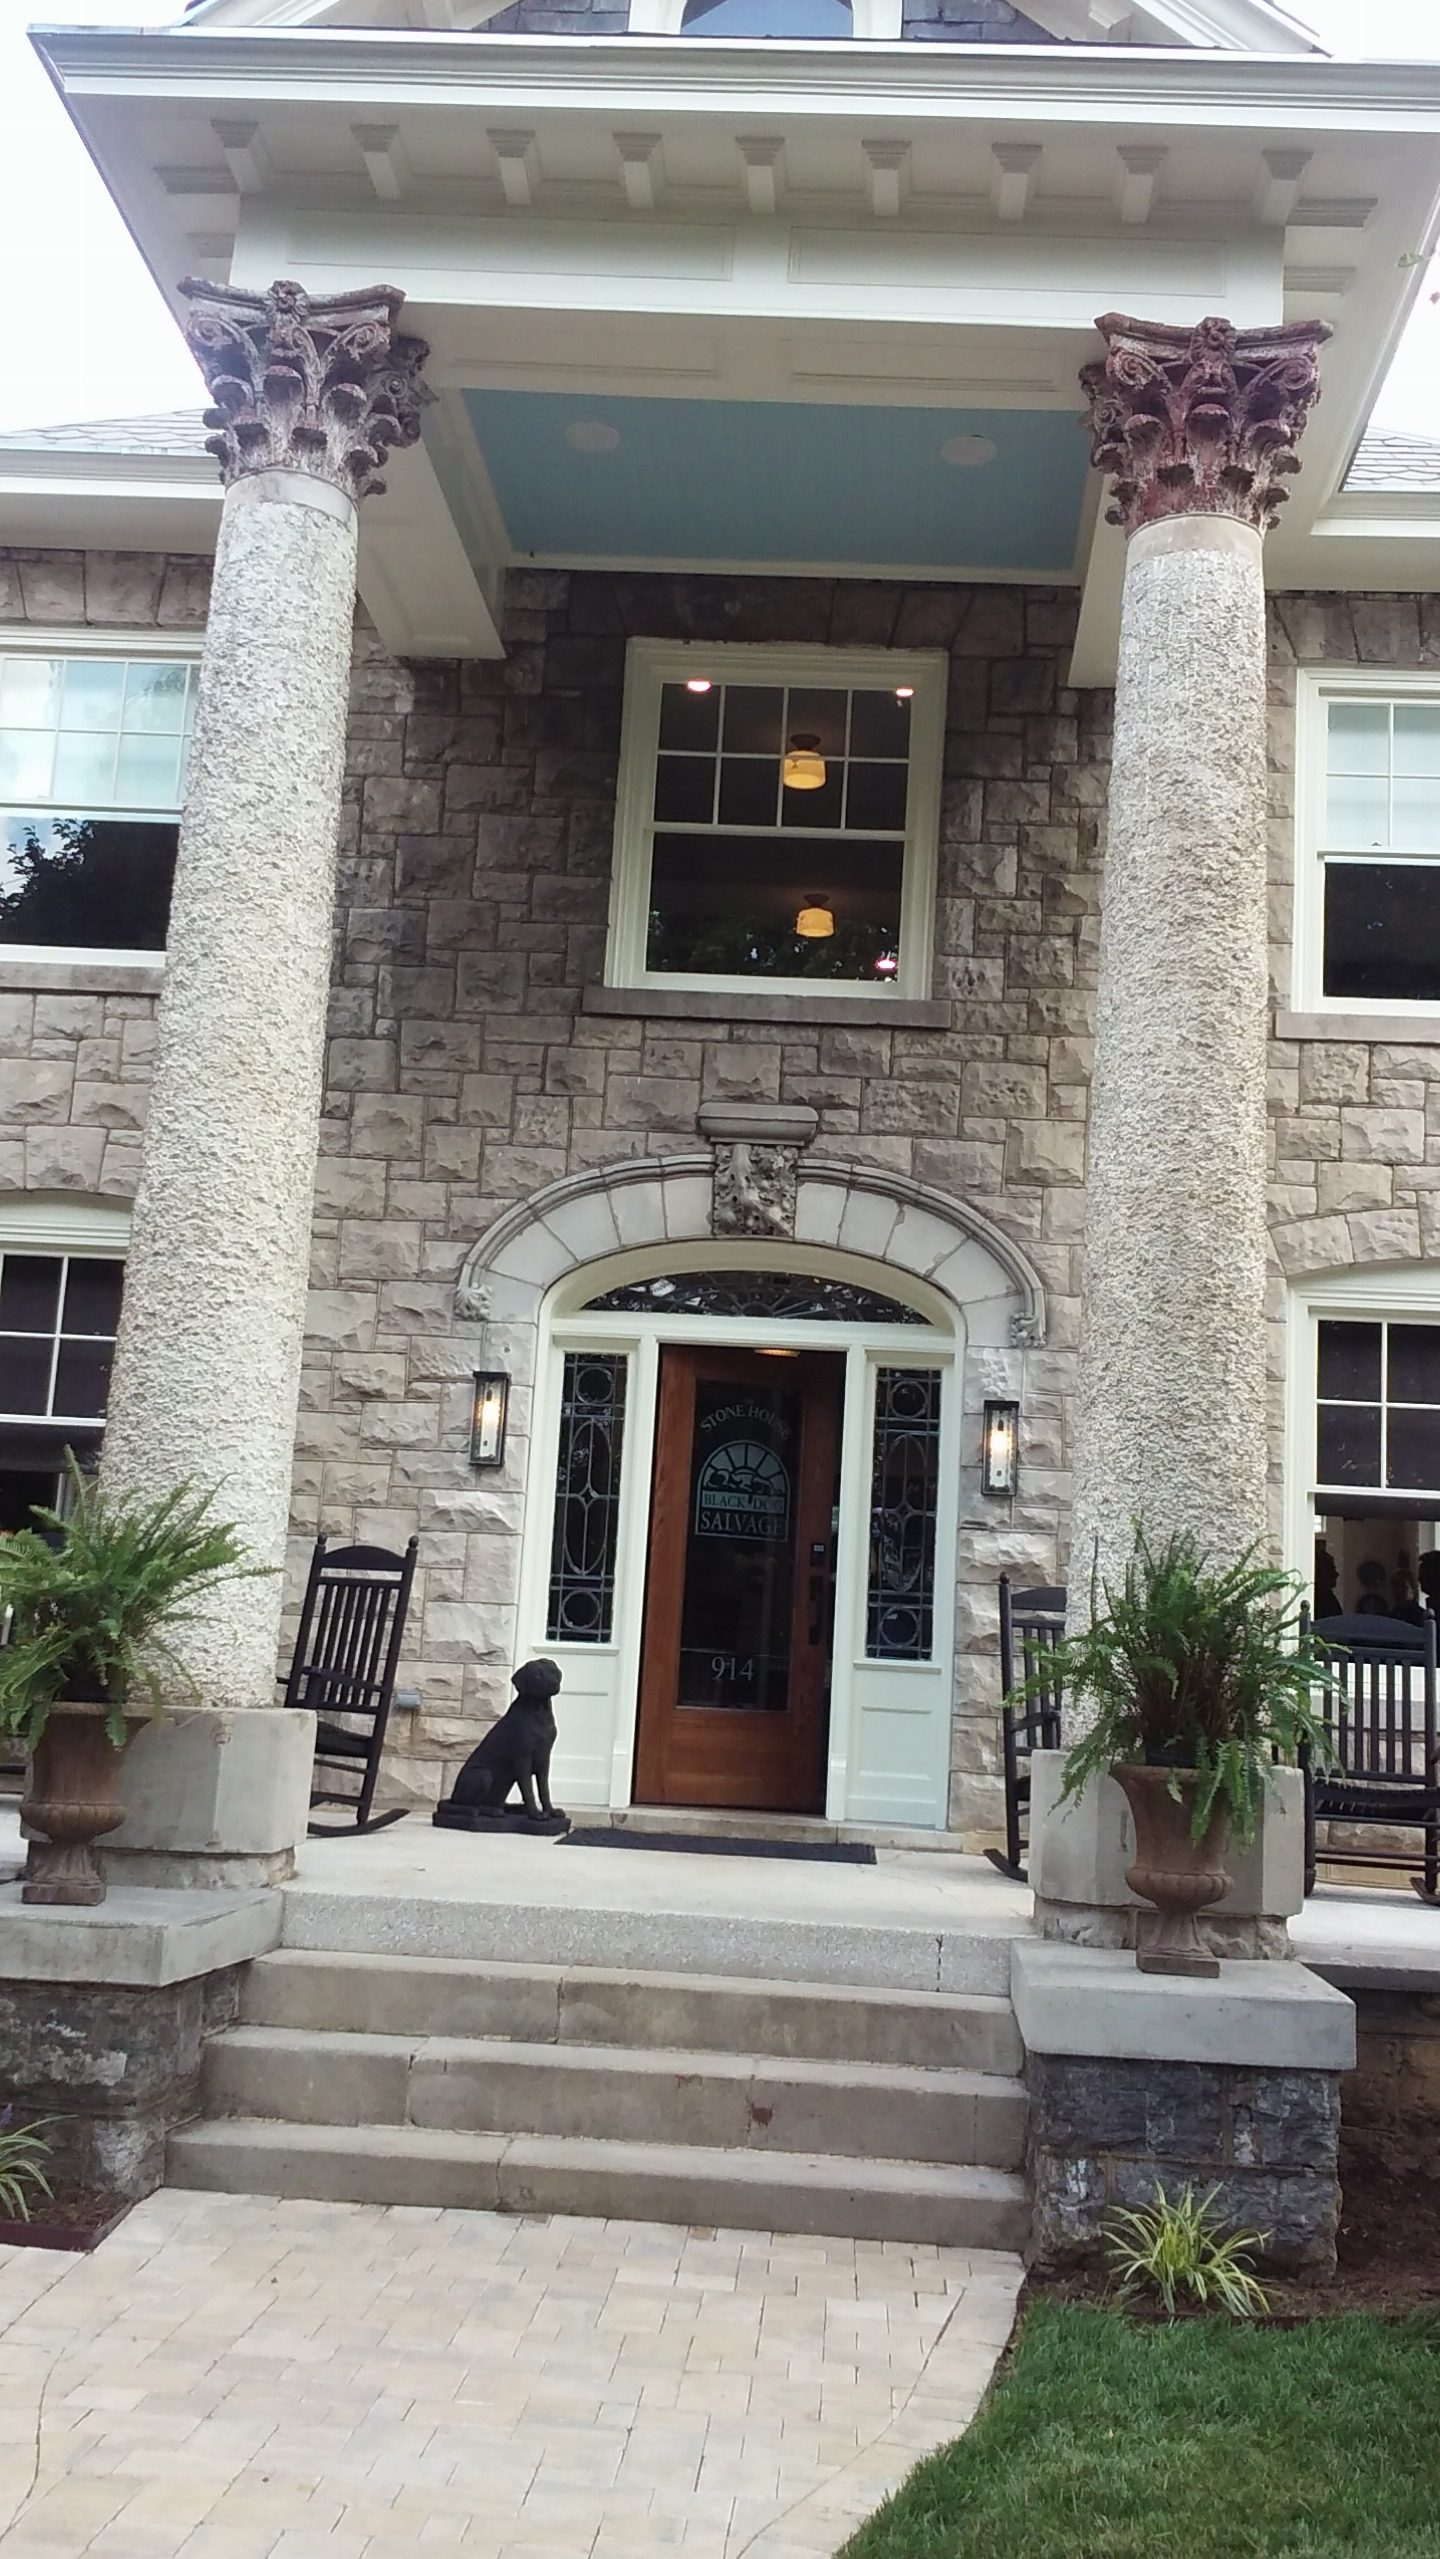 Black dog salvage 39 s remodeled stone house open for rentals for Black stone house